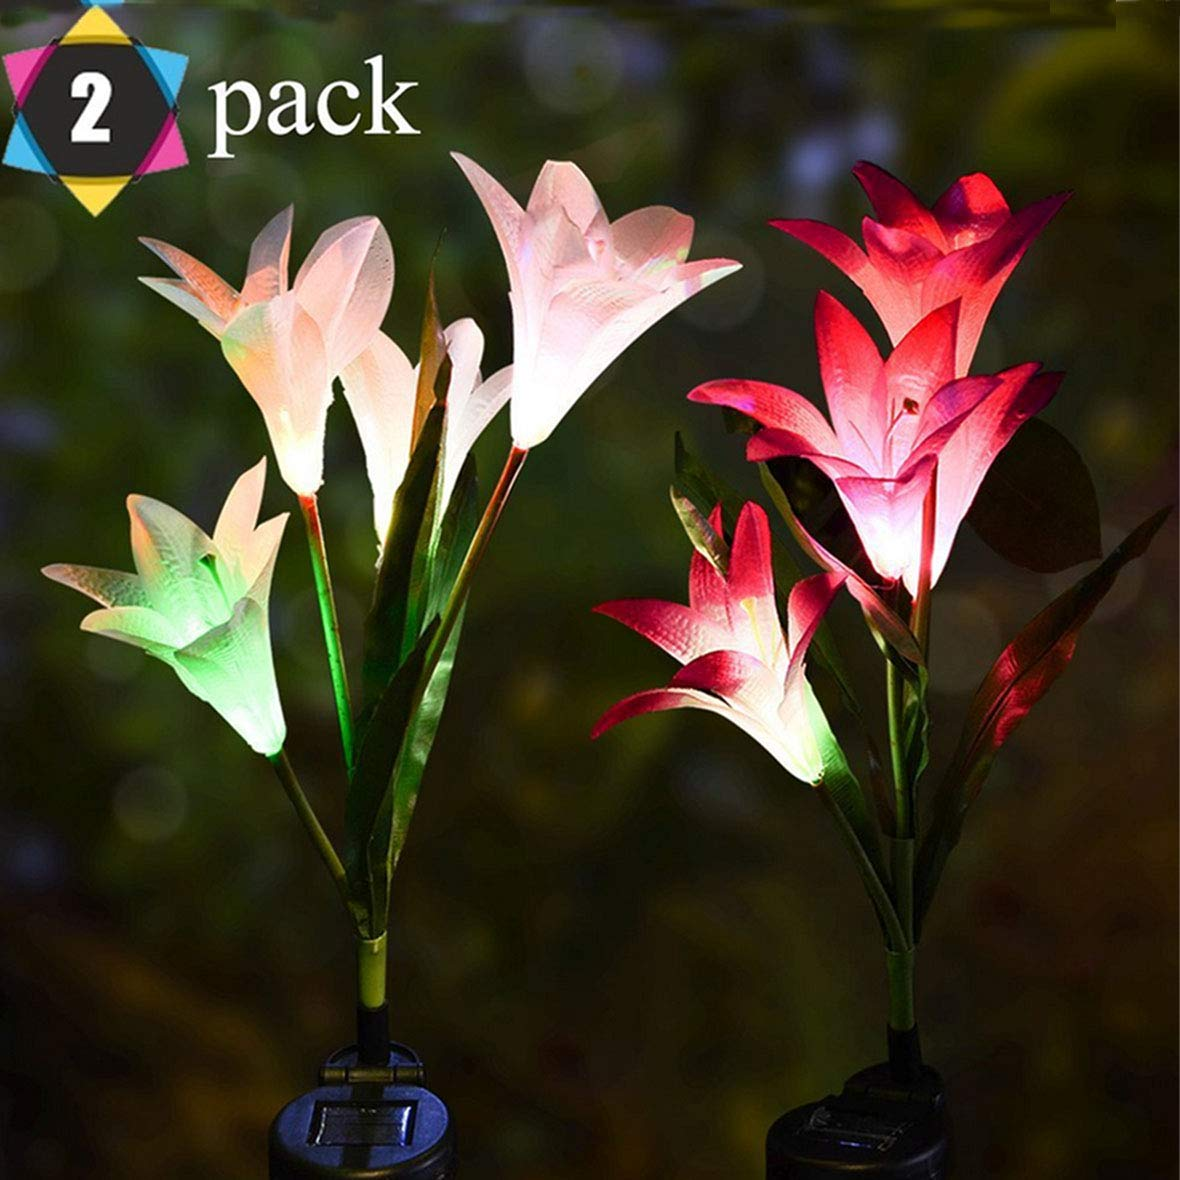 Outdoor Solar Lights, Solar Garden Lights - 2 Pack Lily Solar Powered Flower Lights Stake Lights for Garden Decorations, Patio,Yard Decoration, Multi-Color Changing Lawn Solar Lights Solar Panel by Meas